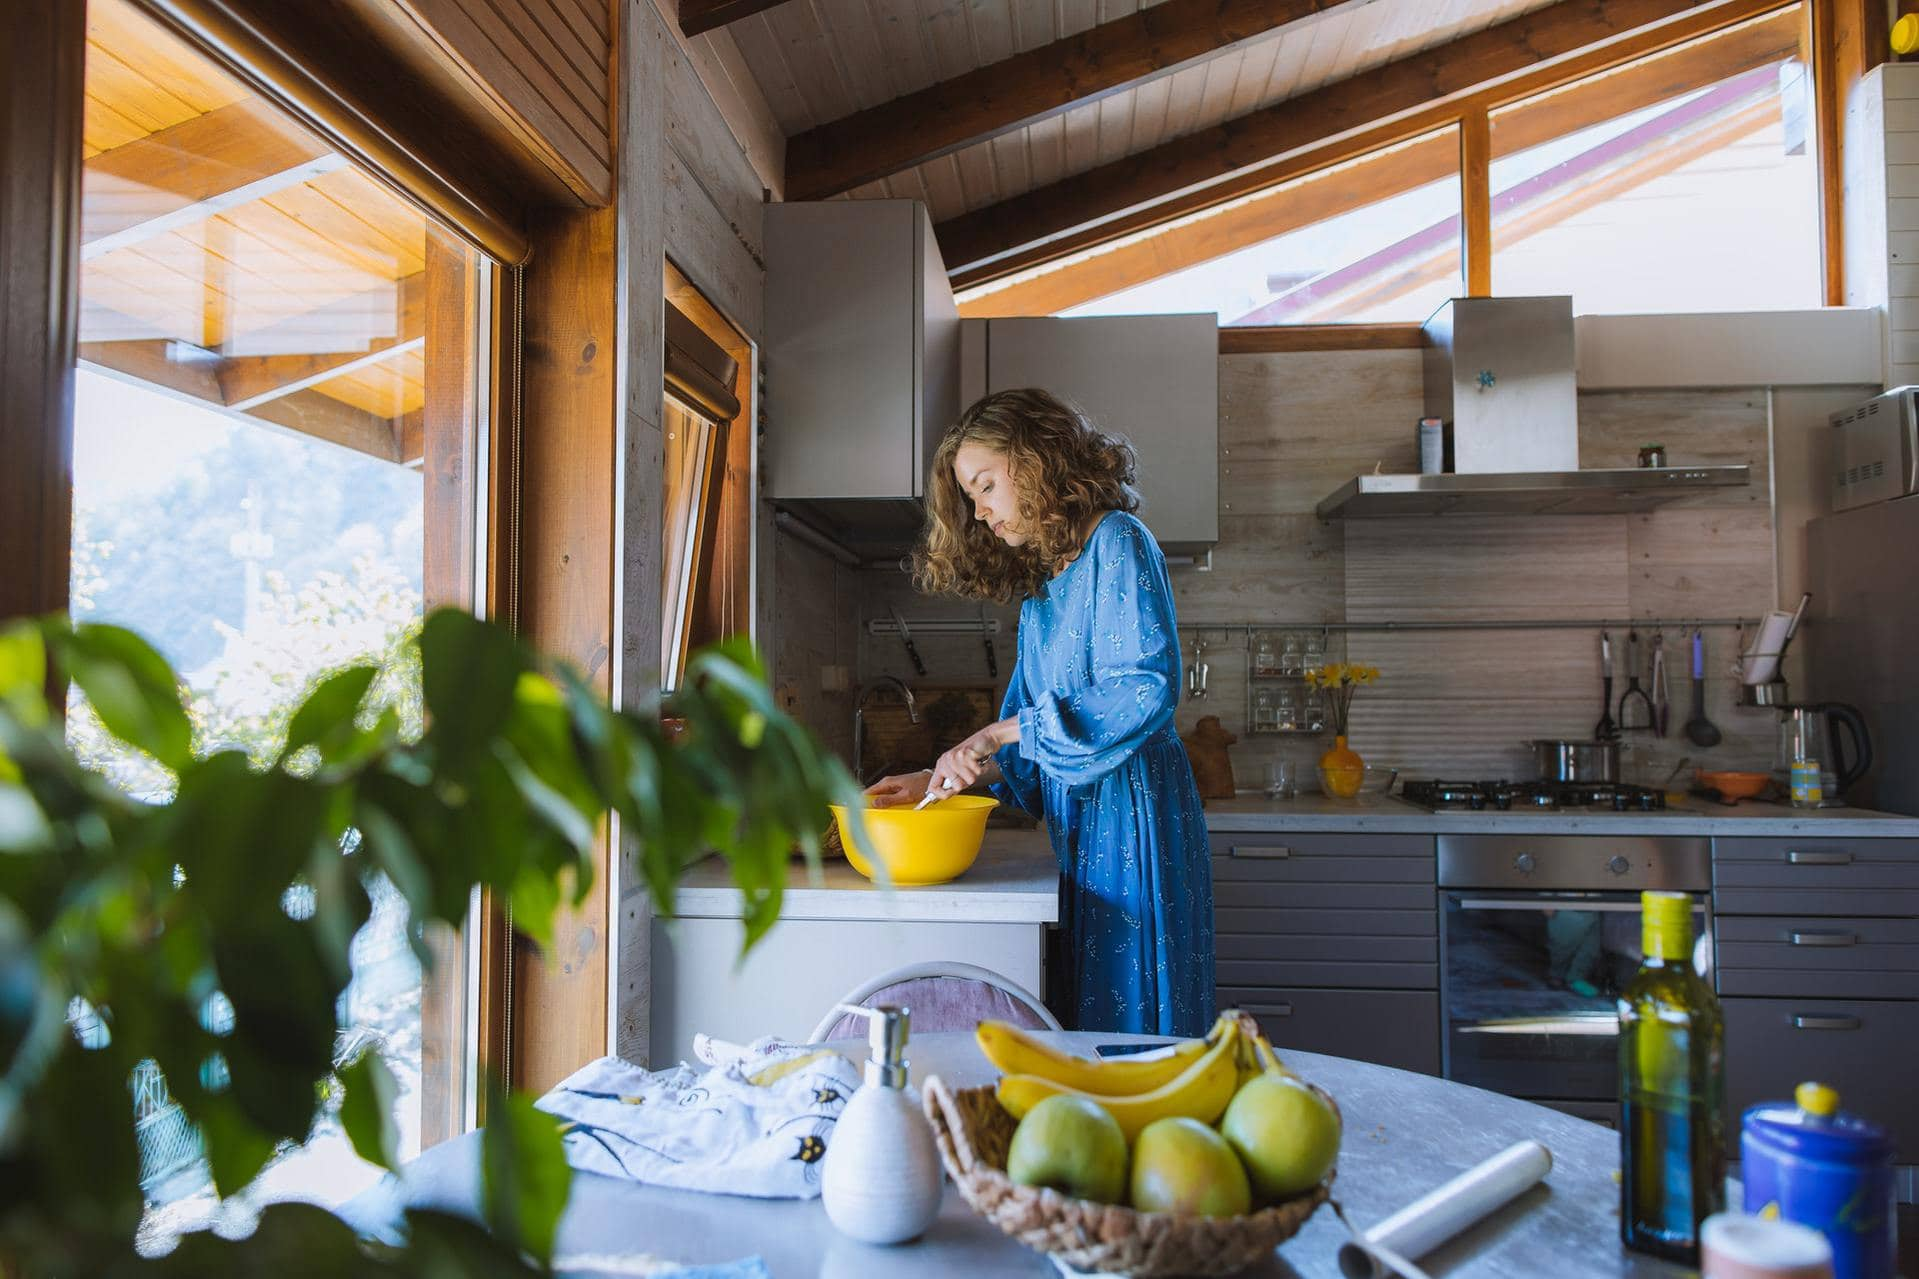 Losing weight starts in your Kitchen